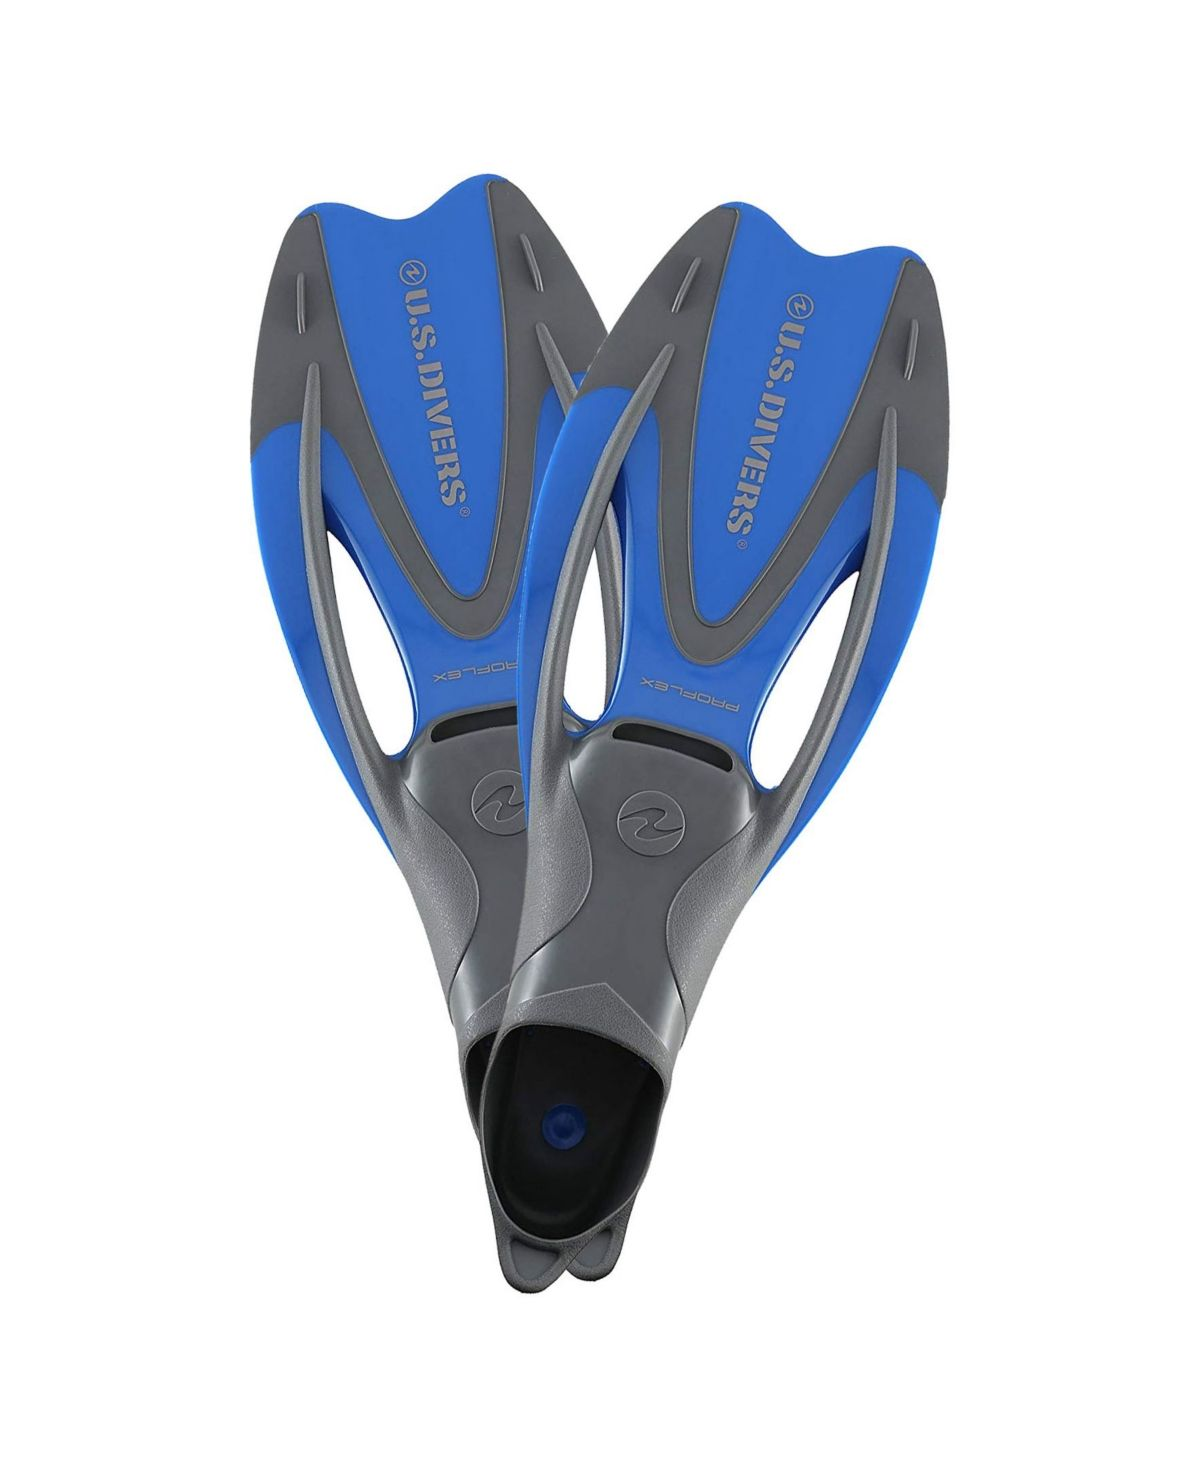 Get around easily underwater with the U.s. Divers Proflex Ii Enclosed Heel Diving Fins. The buoyant composition and full-foot design offer a great fit for size medium and large 8-9.5. The U.s. Divers Proflex Ii Snorkel Fins are specifically designed for snorkeling and diving.